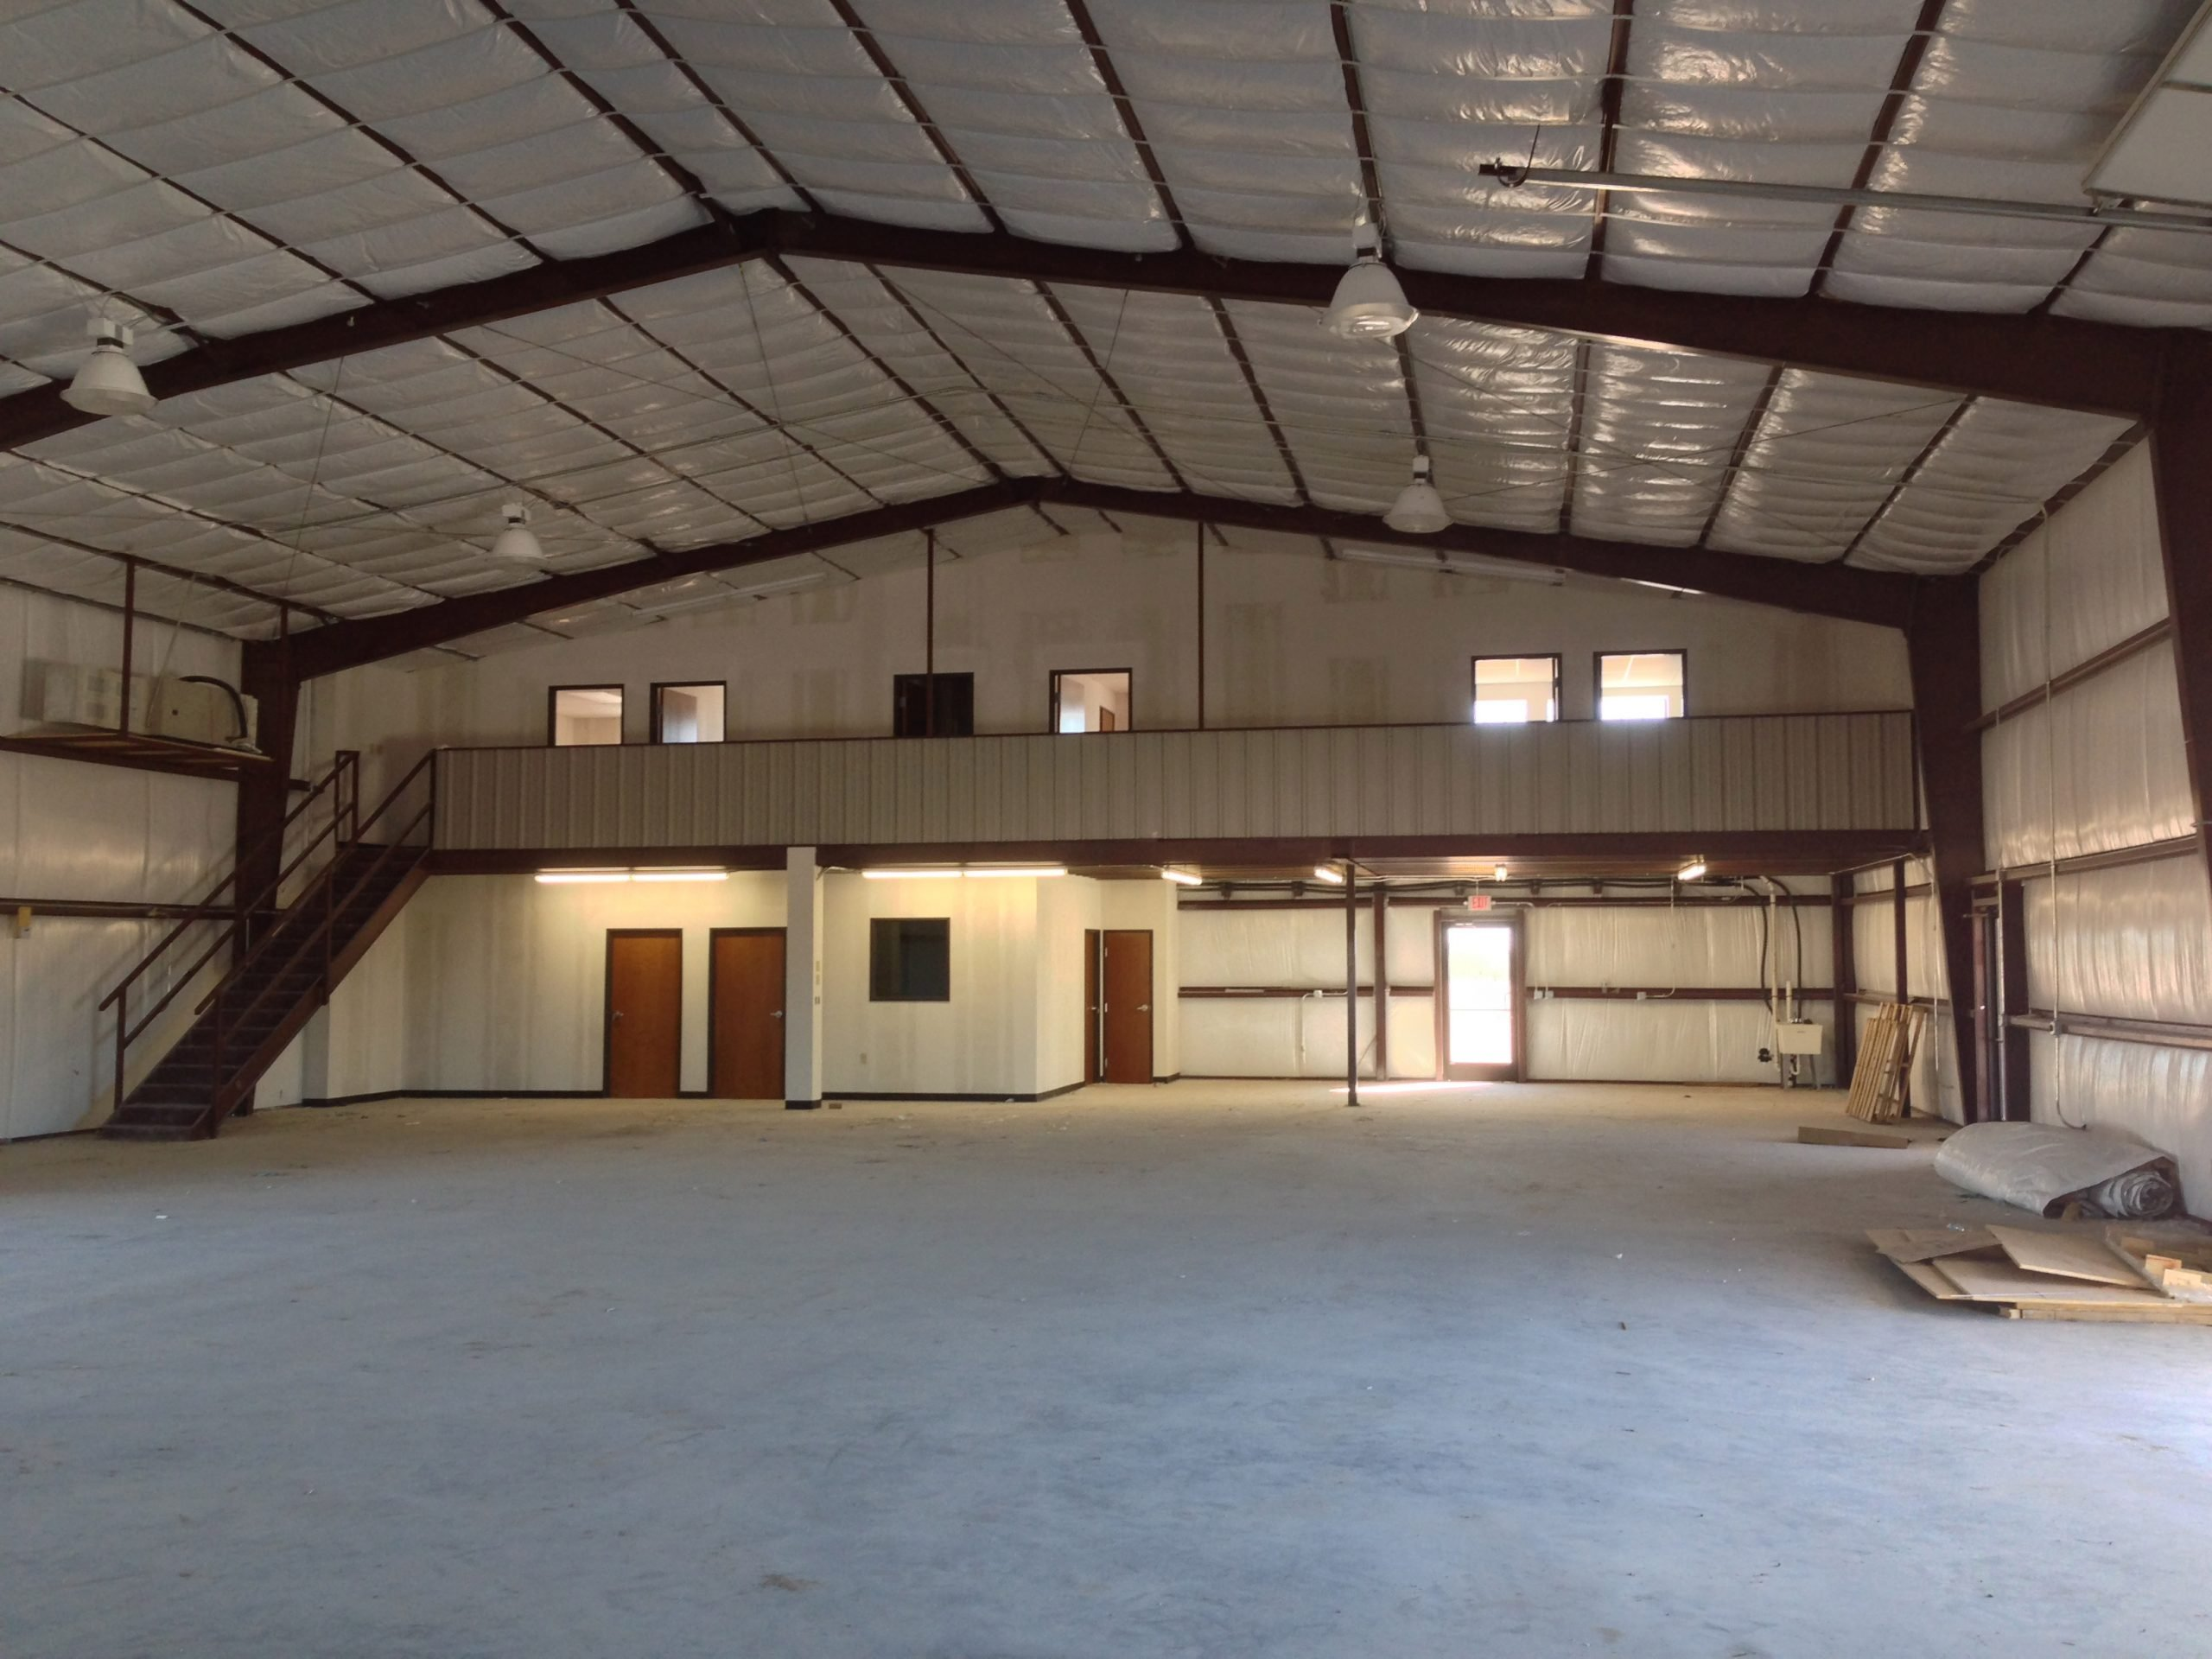 A finished construction project using Lowery's Wholesale steel for the load bearing members.